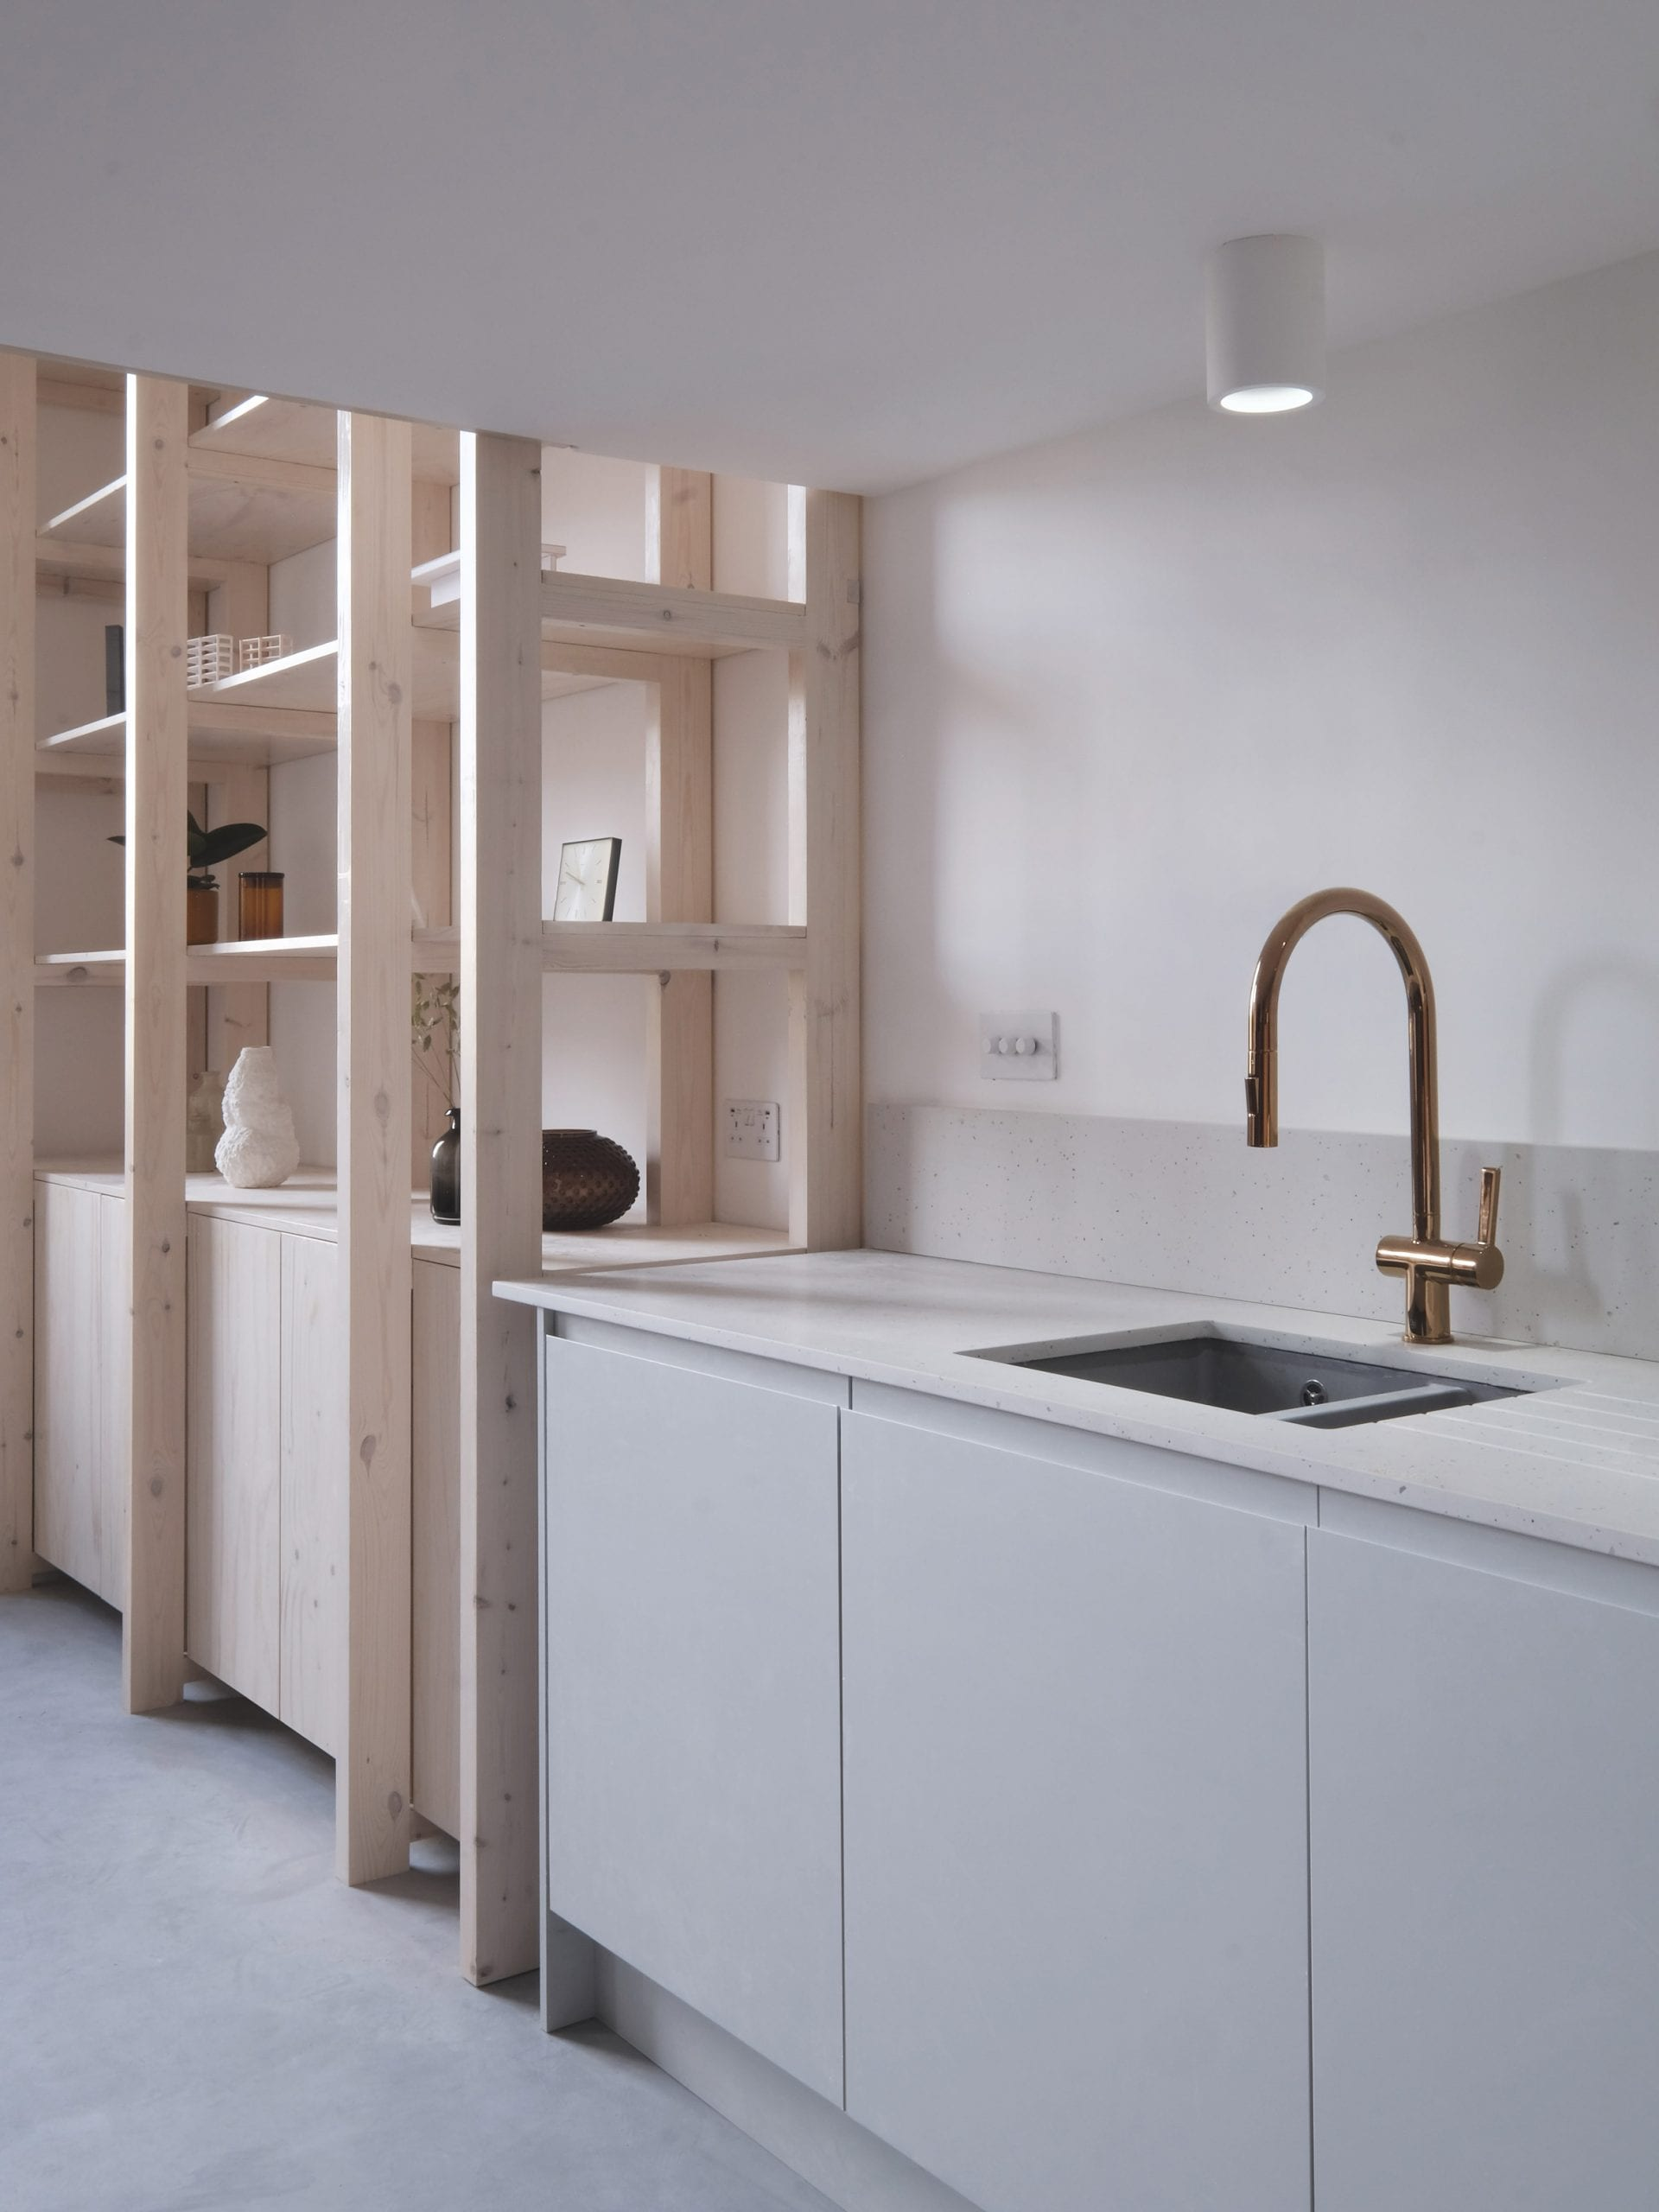 EBBA Architects used clean lines in this one-wall kitchen